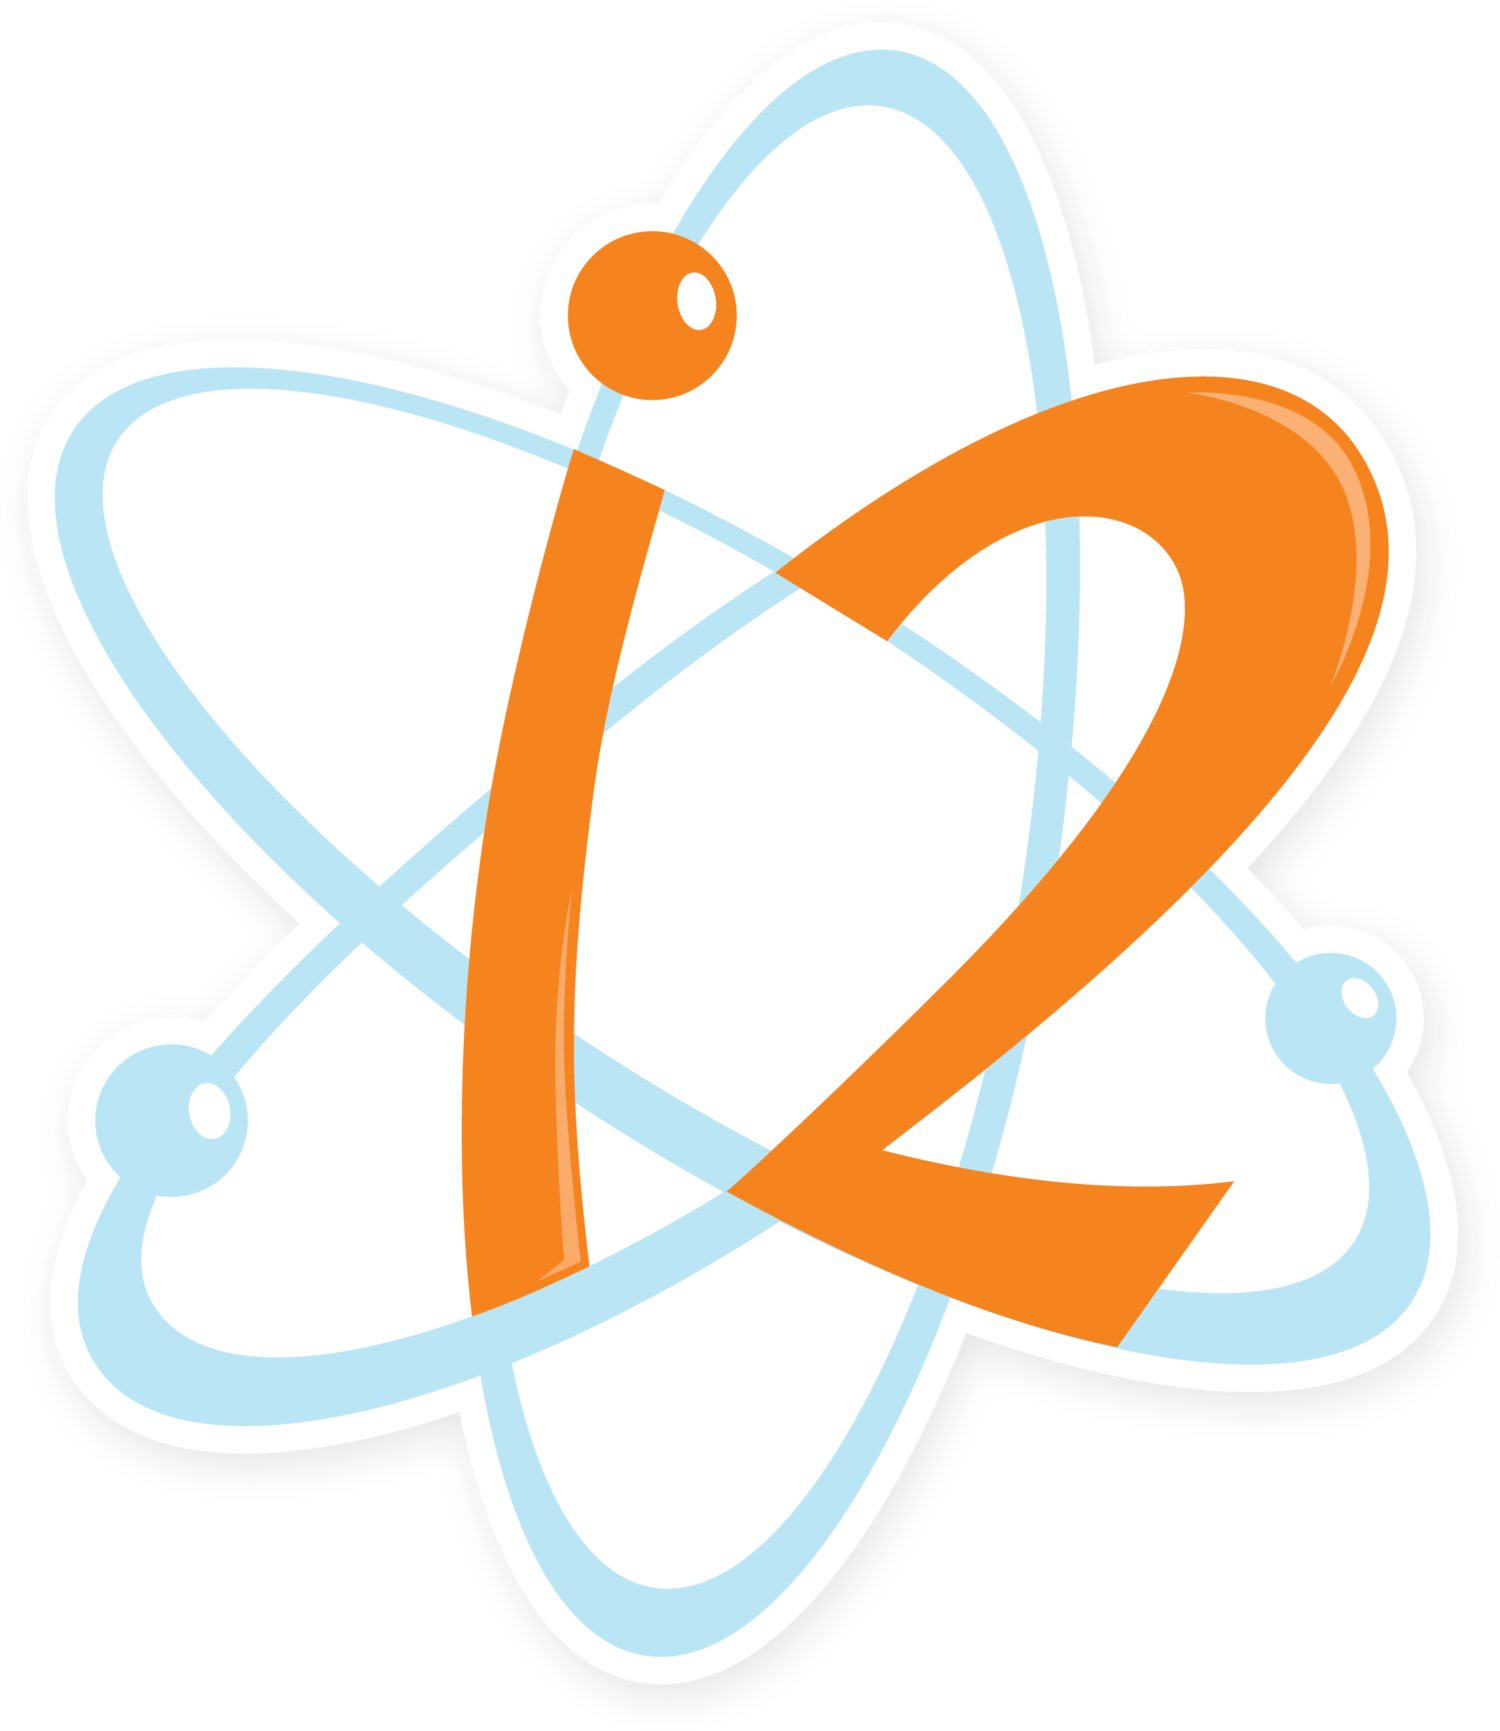 i2 Camp, STEM Summer Camps - Science, Technology, Engineering, Programming, Coding Summer Camp